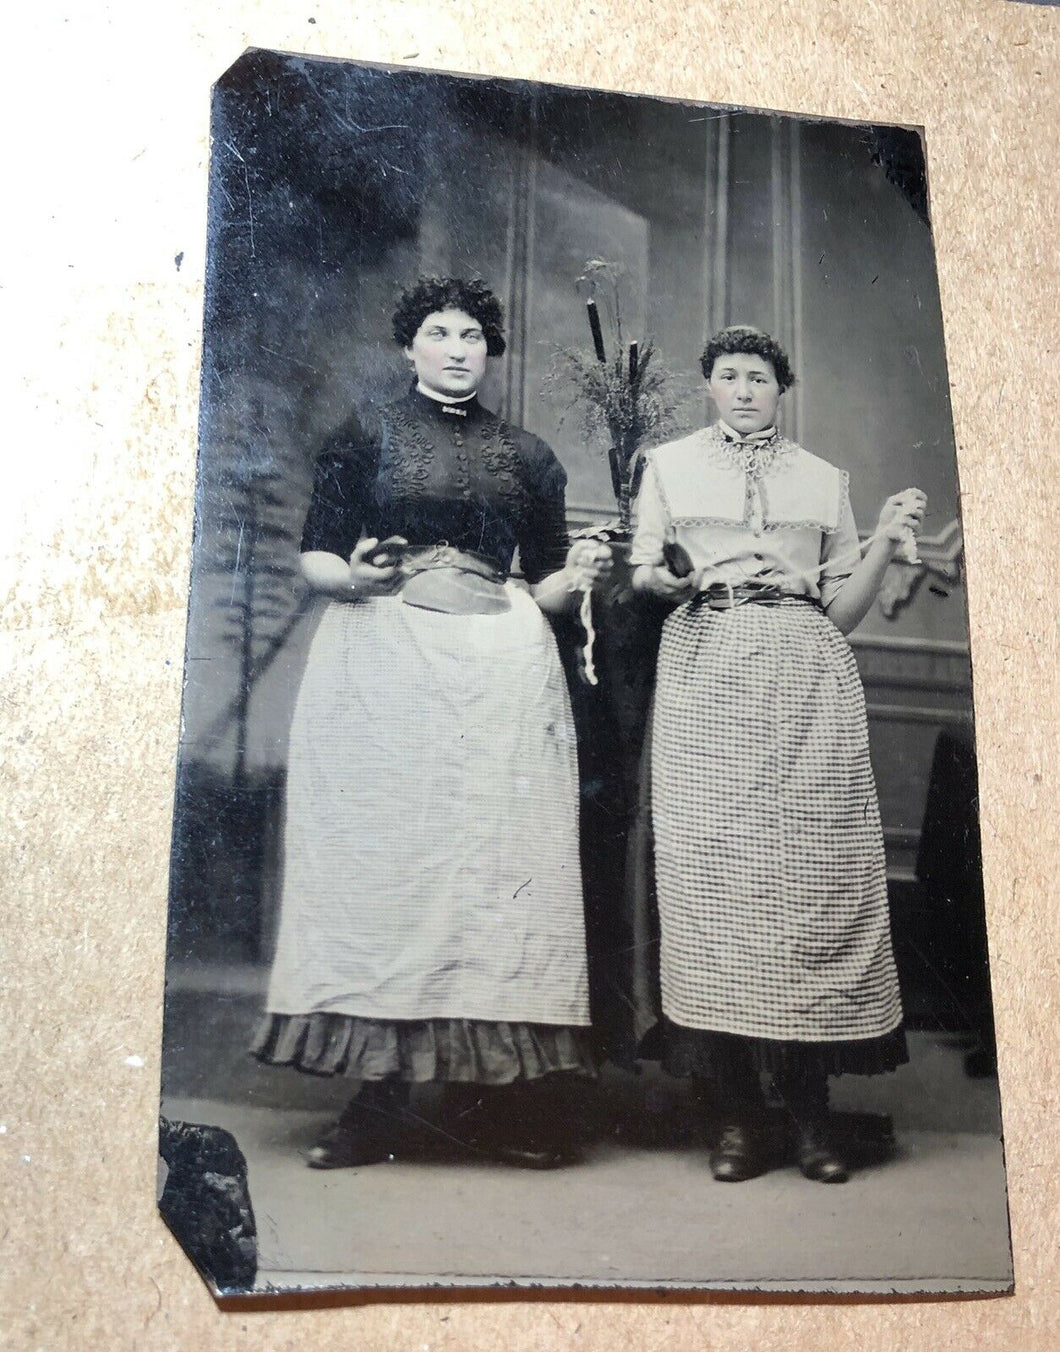 Occupational Tintype Photo Seamstress Textile Workers Winding Yarn, Scissors